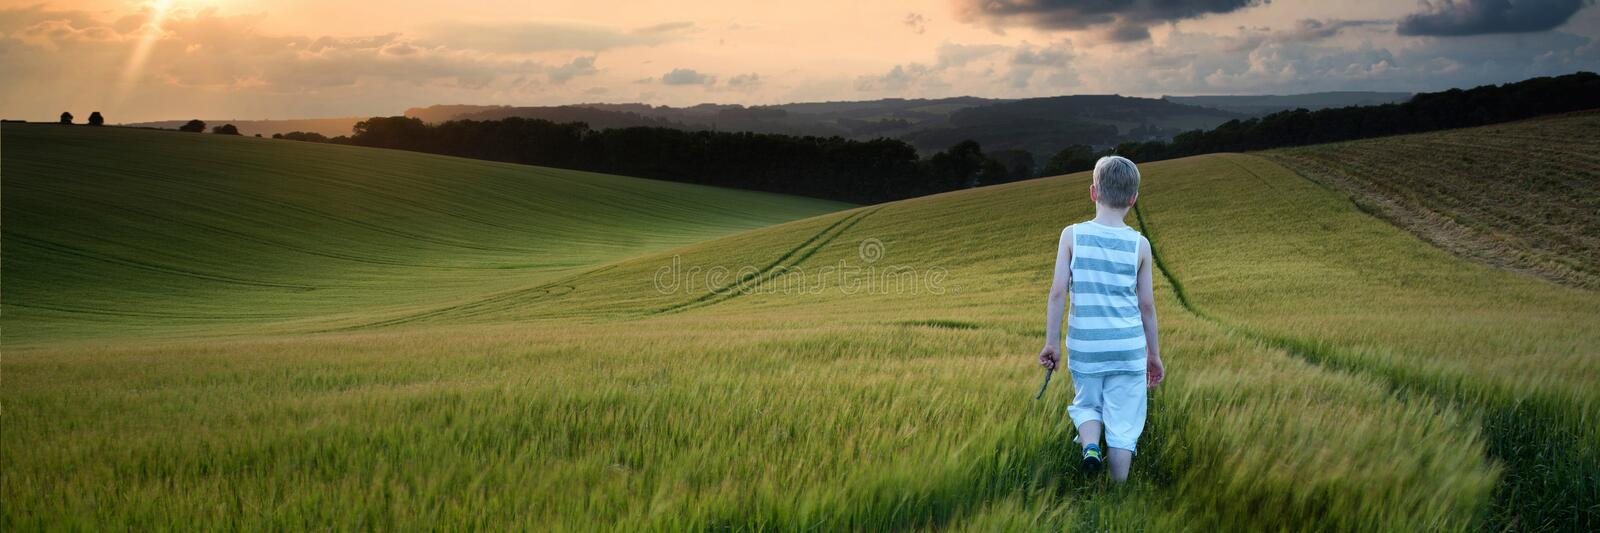 Concept panorama landscape young boy walking through field at sunset in Summer royalty free stock photo